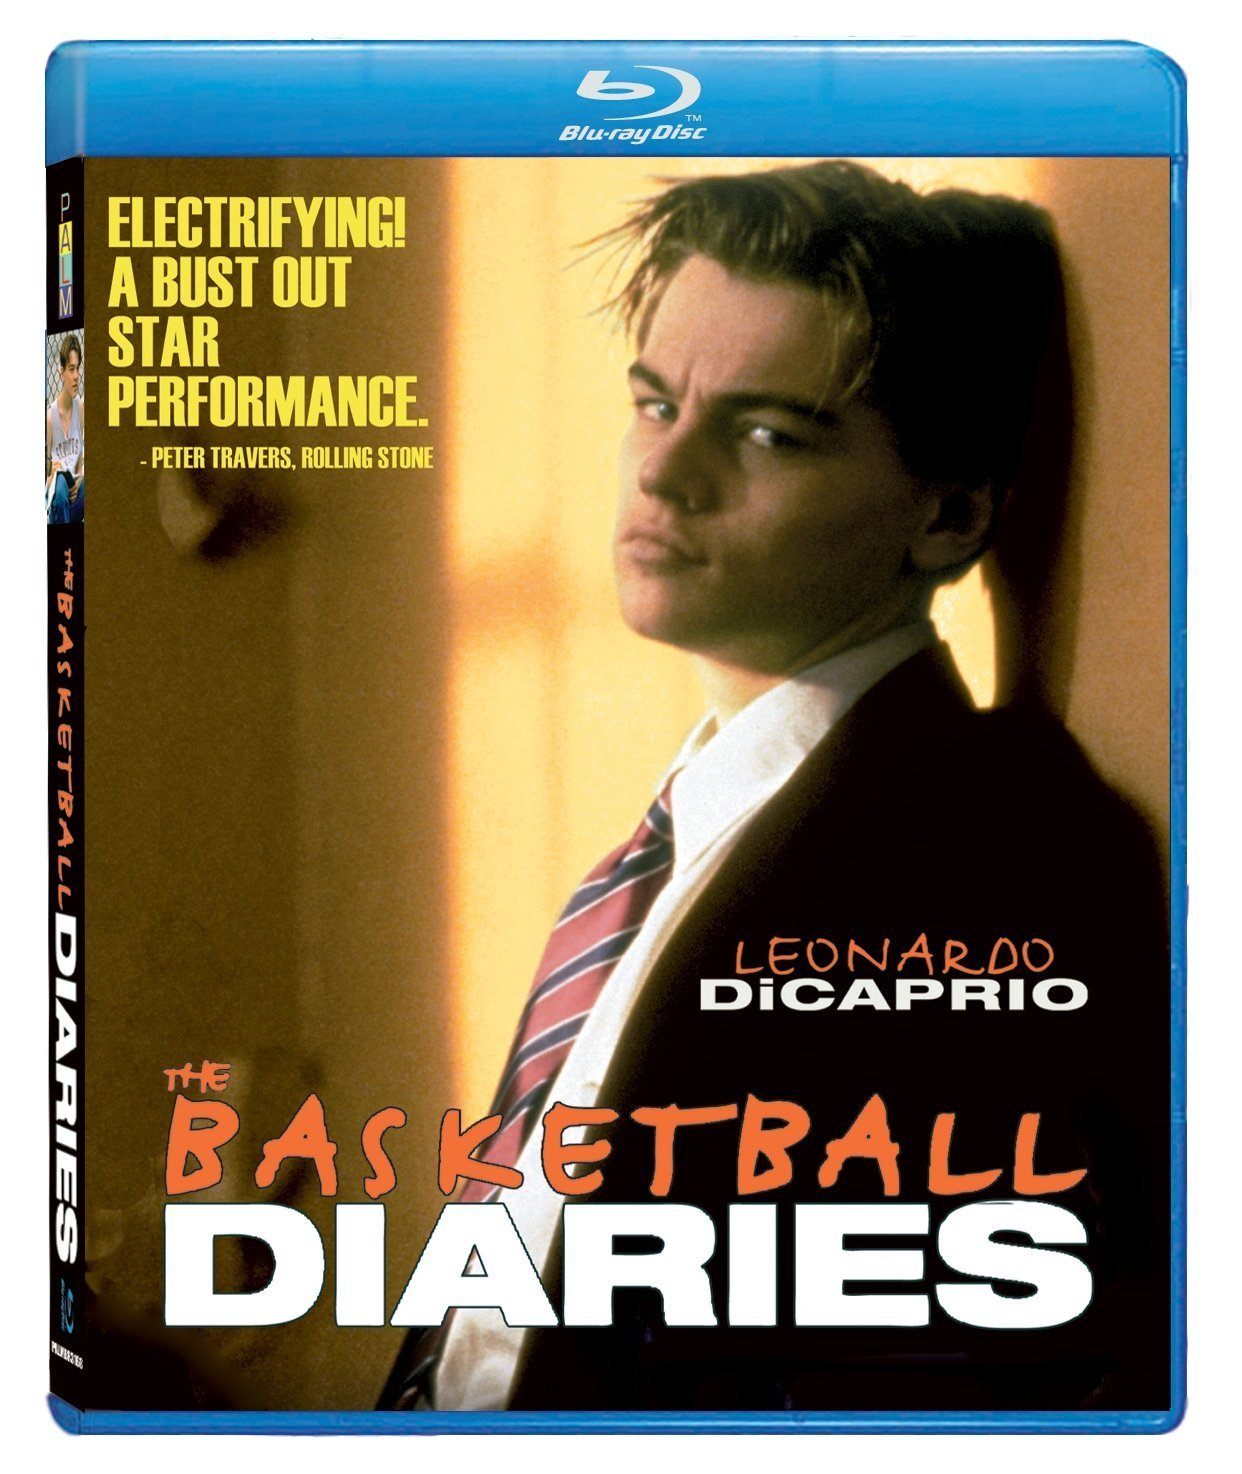 Amazon.com: The Basketball Diaries [Blu-ray]: Leonardo DiCaprio, Lorraine  Bracco, Marilyn Sokol, James Madio, Patrick McGaw, Mark Wahlberg, Roy  Cooper, ...